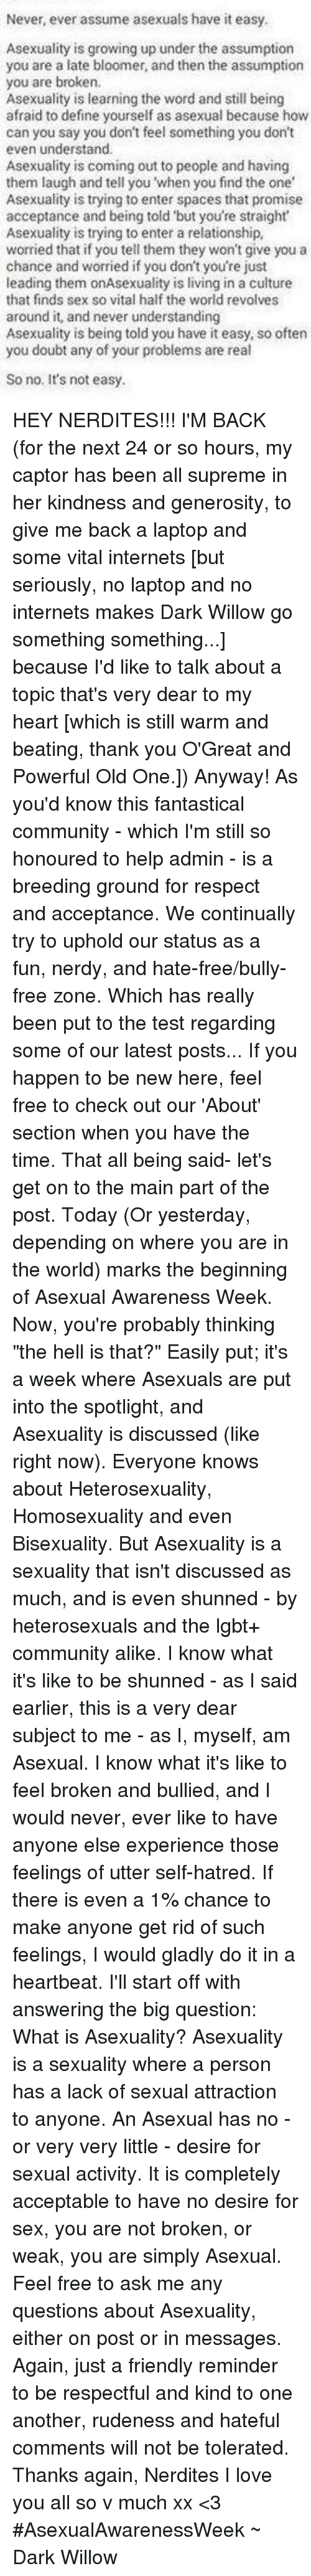 """Hate Comments: Never, ever assume asexuals have it easy.  Asexuality is growing up under the assumption  you are a late bloomer, and then the assumption  you are broken.  Asexuality is learning the word and still being  afraid to define yourself as asexual because how  can you say you don't feel something you don't  even understand.  Asexuality is coming out to people and having  them laugh and tell you 'when you find the one  Asexuality is trying to enter spaces that promise  acceptance and being told but you're straight  Asexuality is trying to enter a relationship,  worried that if you tell them they won't give you a  chance and worried if you don't you're just  leading them onAsexuality is living in a culture  that finds sex so vital half the world revolves  around it, and never understanding  Asexuality is being told you have it easy, so often  you doubt any of your problems are real  So no. It's not easy. HEY NERDITES!!! I'M BACK (for the next 24 or so hours, my captor has been all supreme in her kindness and generosity, to give me back a laptop and some vital internets [but seriously, no laptop and no internets makes Dark Willow go something something...] because I'd like to talk about a topic that's very dear to my heart [which is still warm and beating, thank you O'Great and Powerful Old One.]) Anyway! As you'd know this fantastical community - which I'm still so honoured to help admin - is a breeding ground for respect and acceptance. We continually try to uphold our status as a fun, nerdy, and hate-free/bully-free zone. Which has really been put to the test regarding some of our latest posts... If you happen to be new here, feel free to check out our 'About' section when you have the time. That all being said- let's get on to the main part of the post. Today (Or yesterday, depending on where you are in the world) marks the beginning of Asexual Awareness Week. Now, you're probably thinking """"the hell is that?"""" Easily put; it's a week where Asexuals are put """